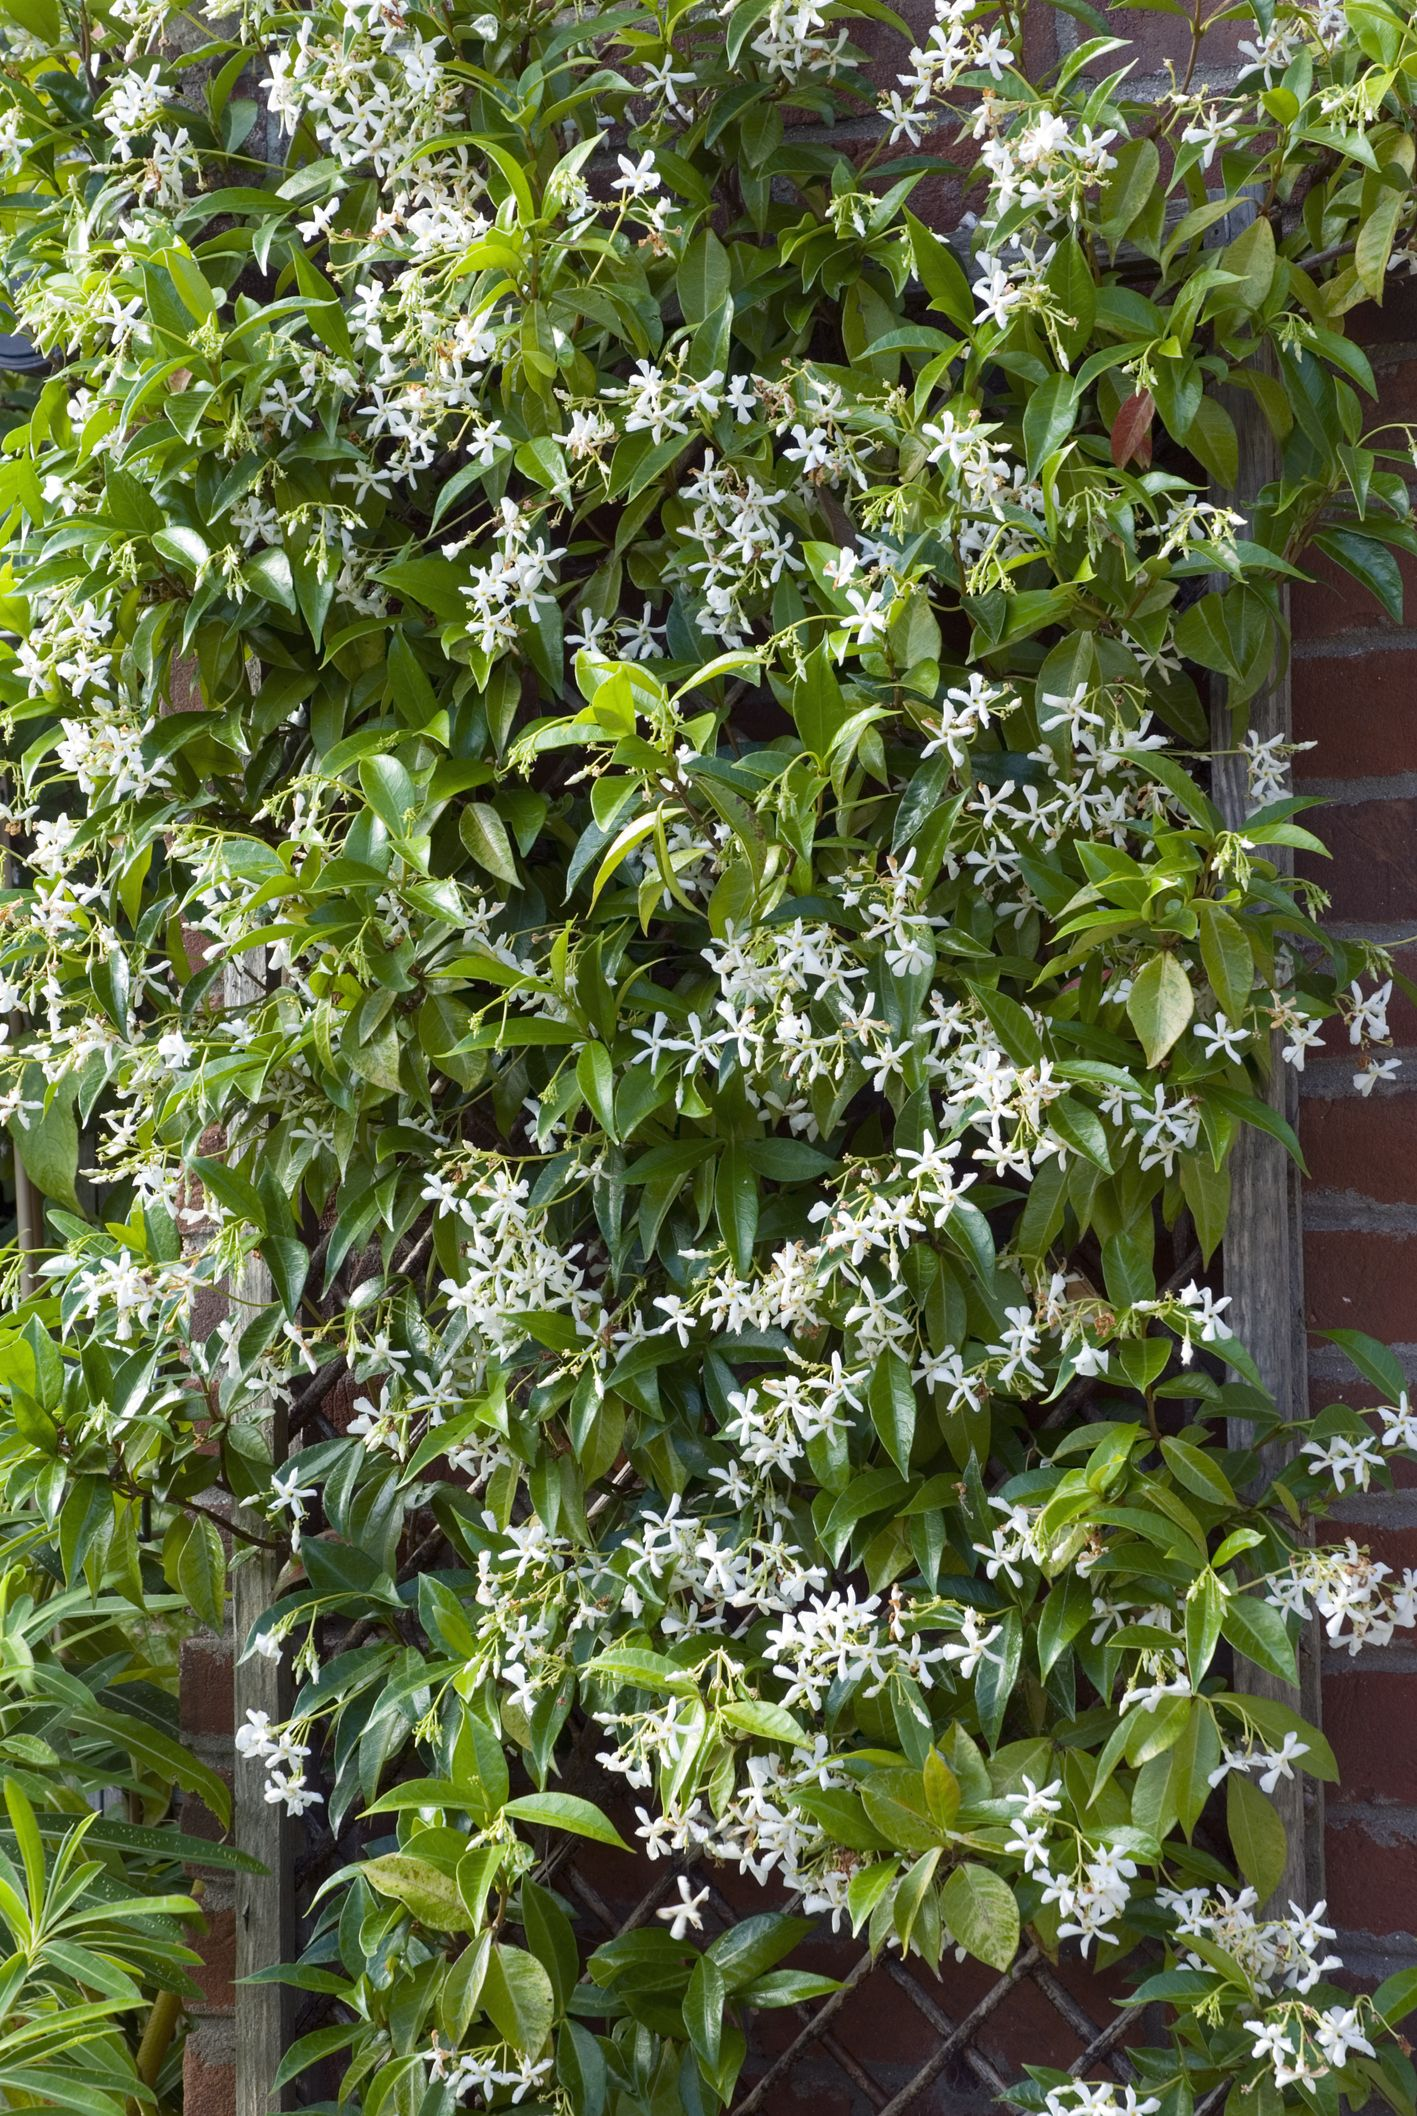 12 fast growing flowering vines for your garden trachelospermum star jasmine trachelospermum jasminoides zones 8 10 mightylinksfo